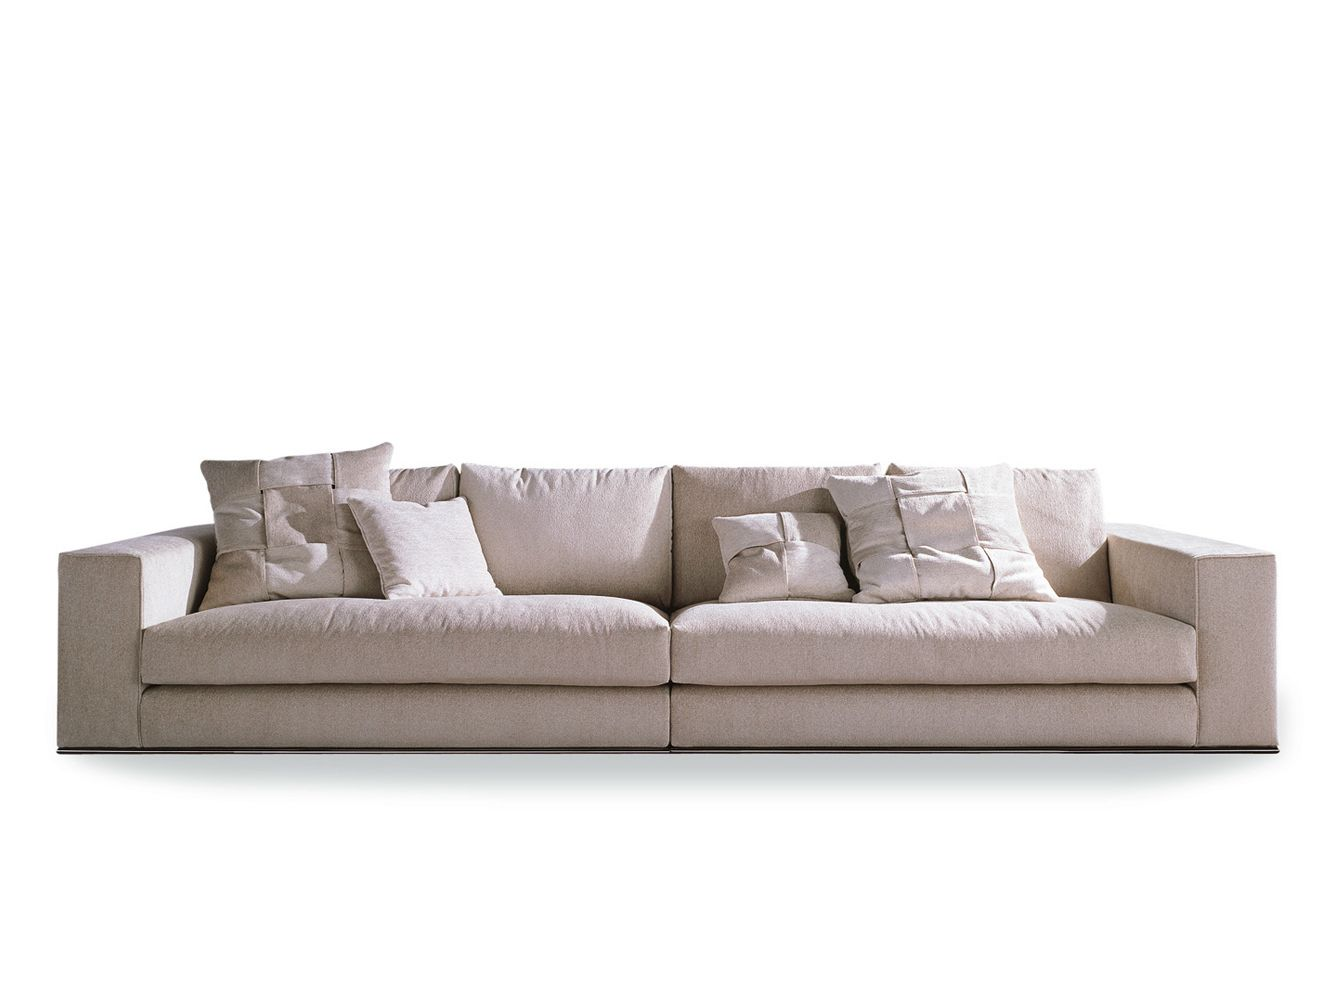 Download The Catalogue And Request Prices Of Hamilton By Minotti Sofa Hamilton Collection Hamilton Sofa Minotti Minotti Sofa